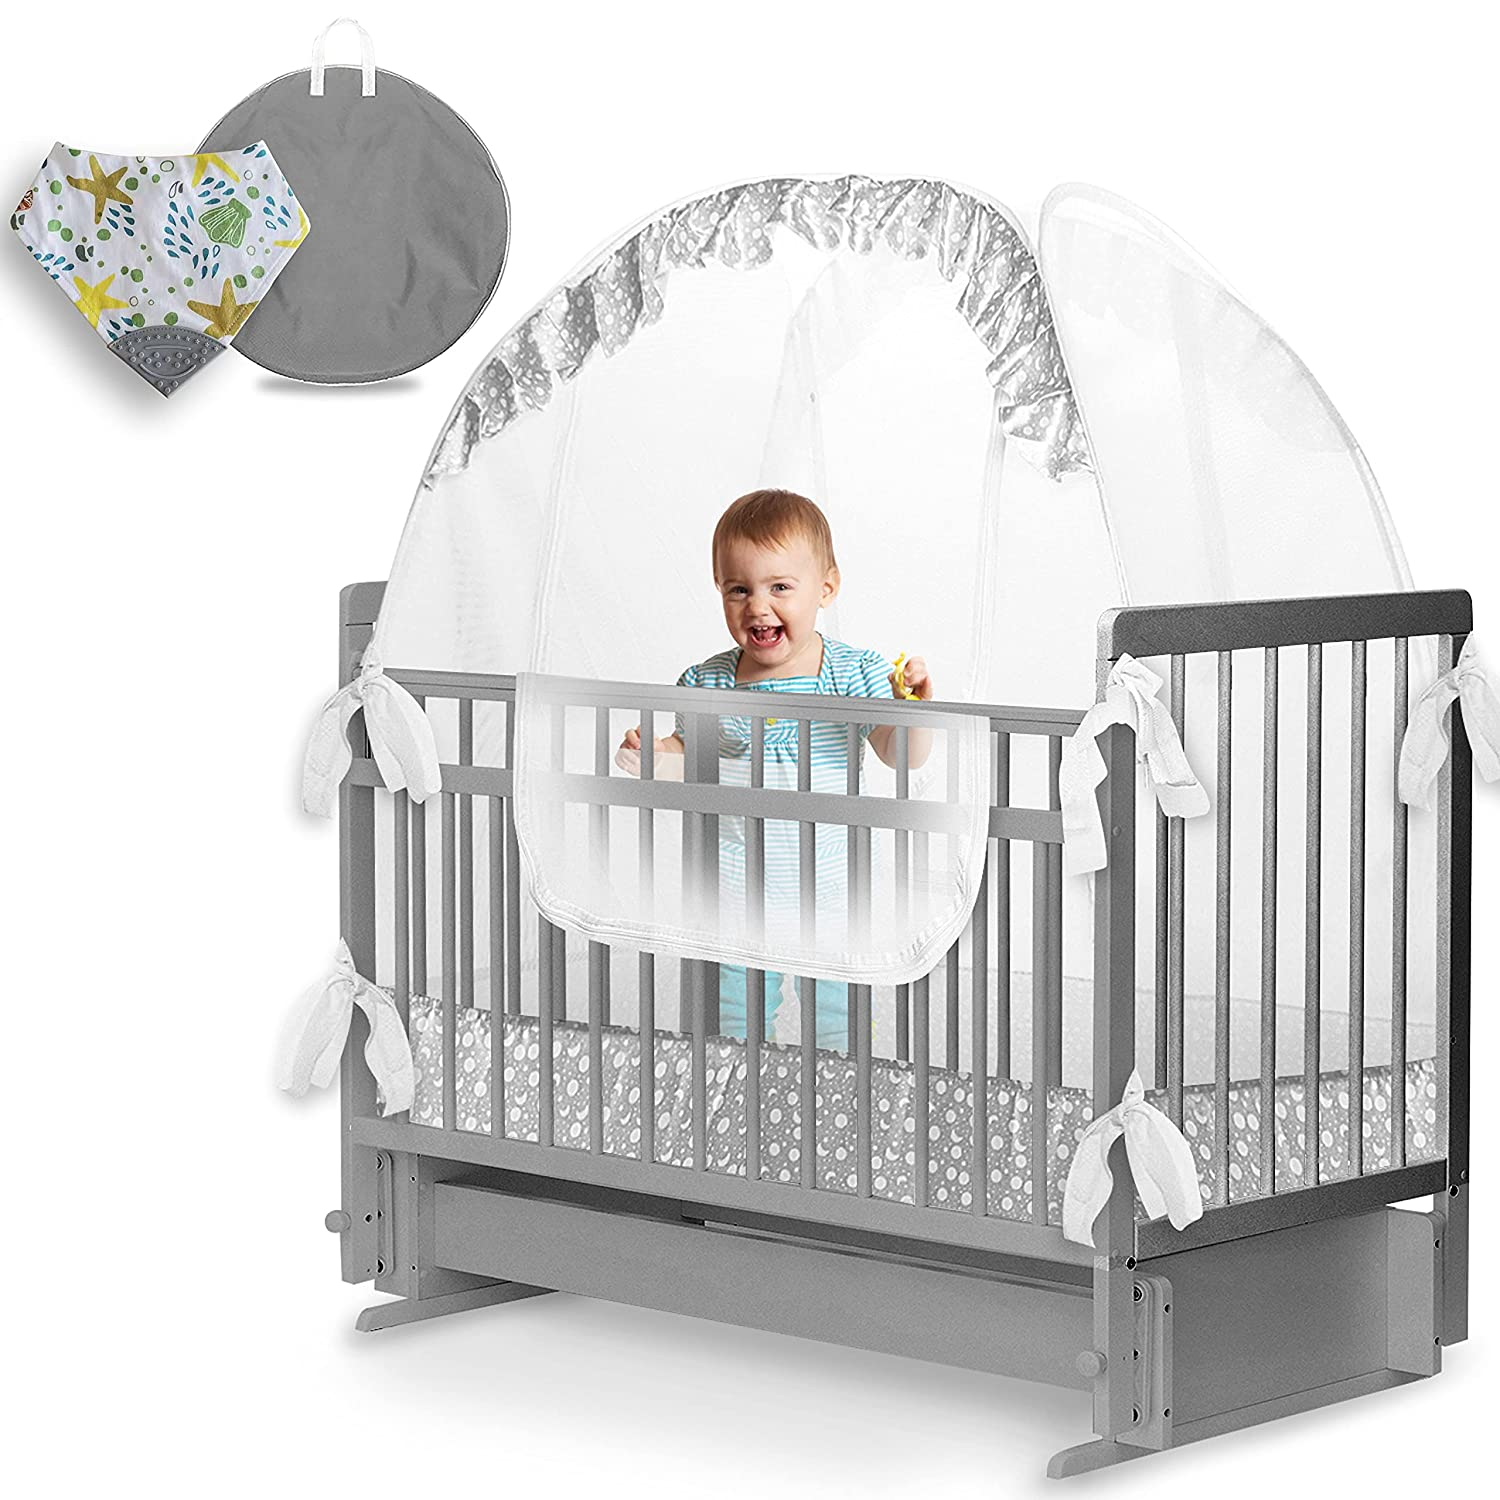 LA CHUPETA Crib Tent - Baby Mosquito Net & Crib Cover to Keep Baby from Climbing Out | Safety Pop Up Canopy, Crib Net to Keep Baby in and Crib Tent to Protect Your Baby from Insect Bites